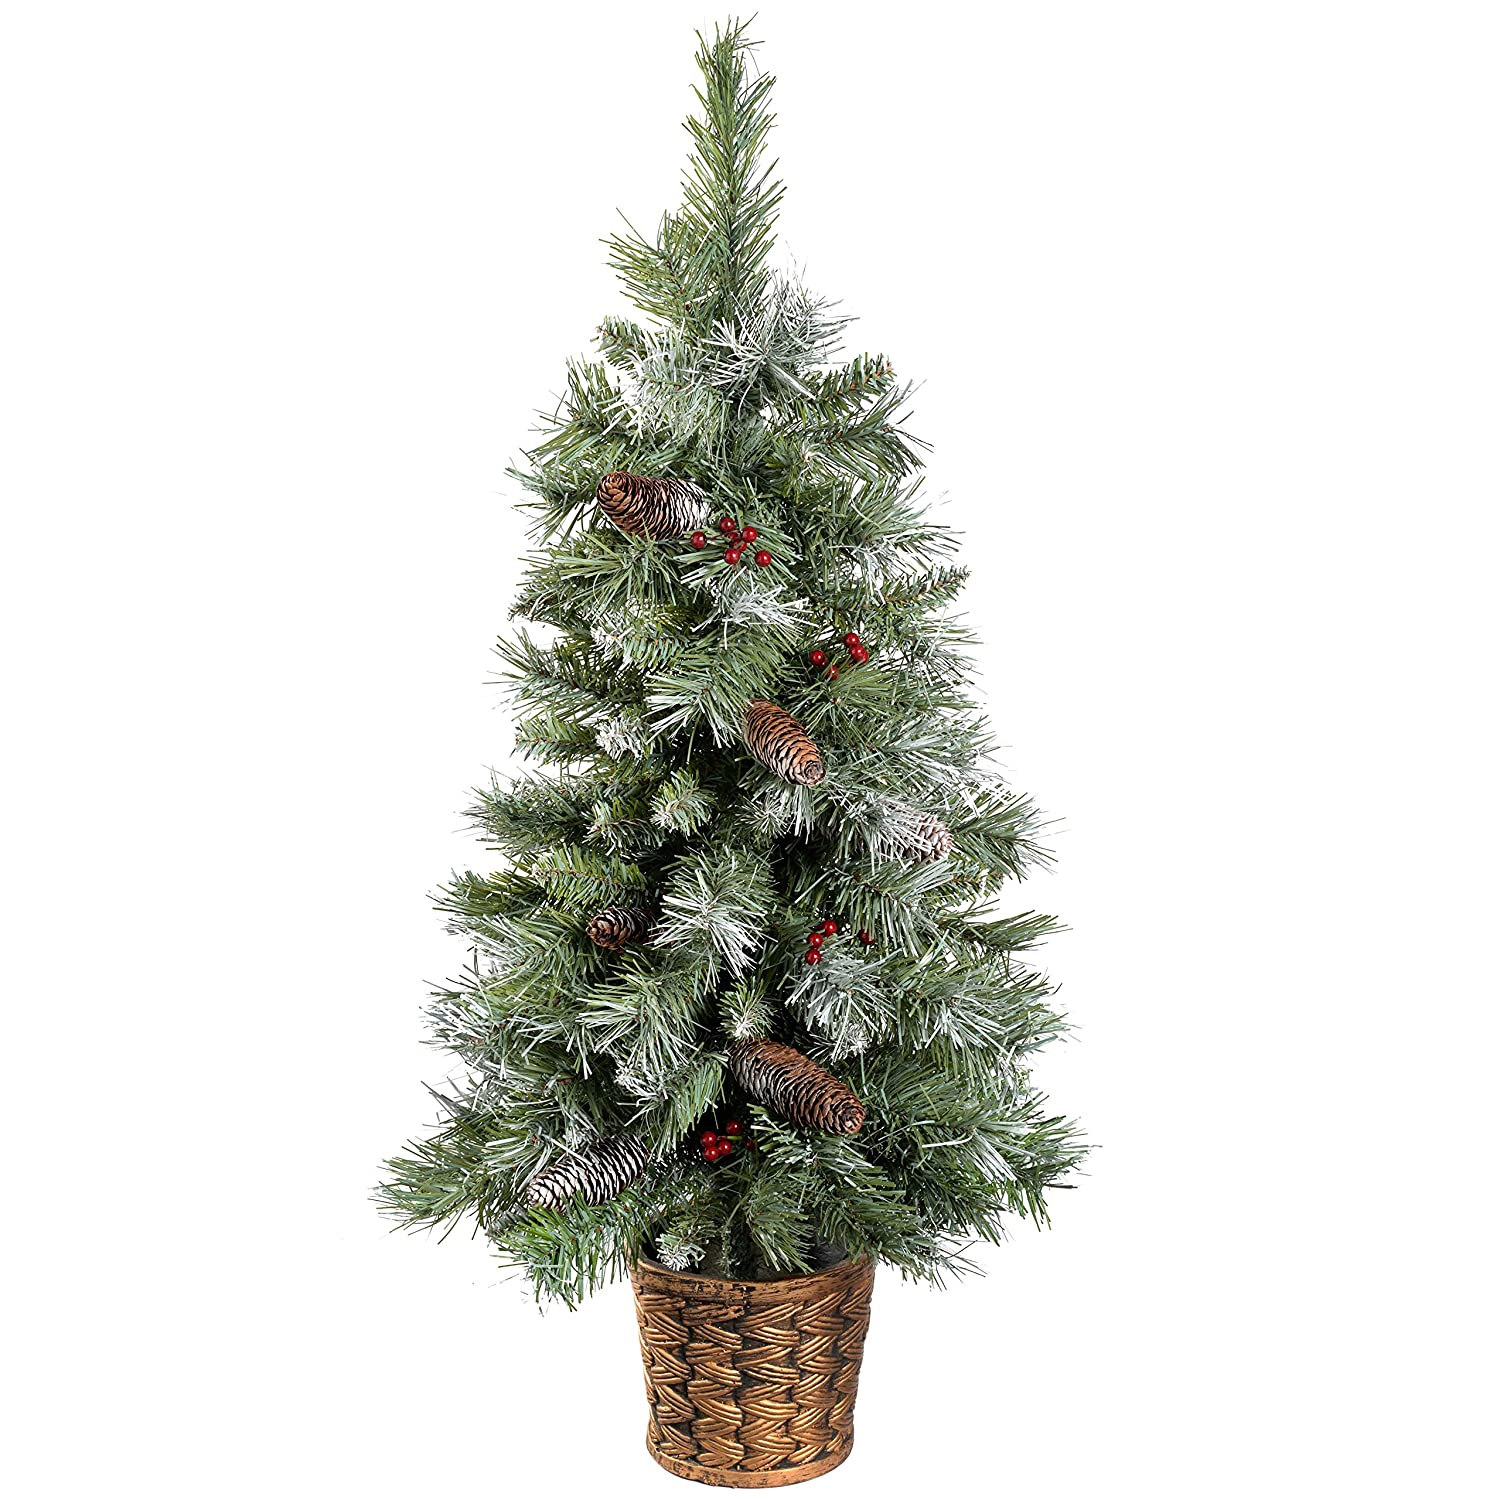 werchristmas scandinavian blue spruce christmas tree with pine cones and berries in a gold resin pot 3 feet green - Flat Back Christmas Tree